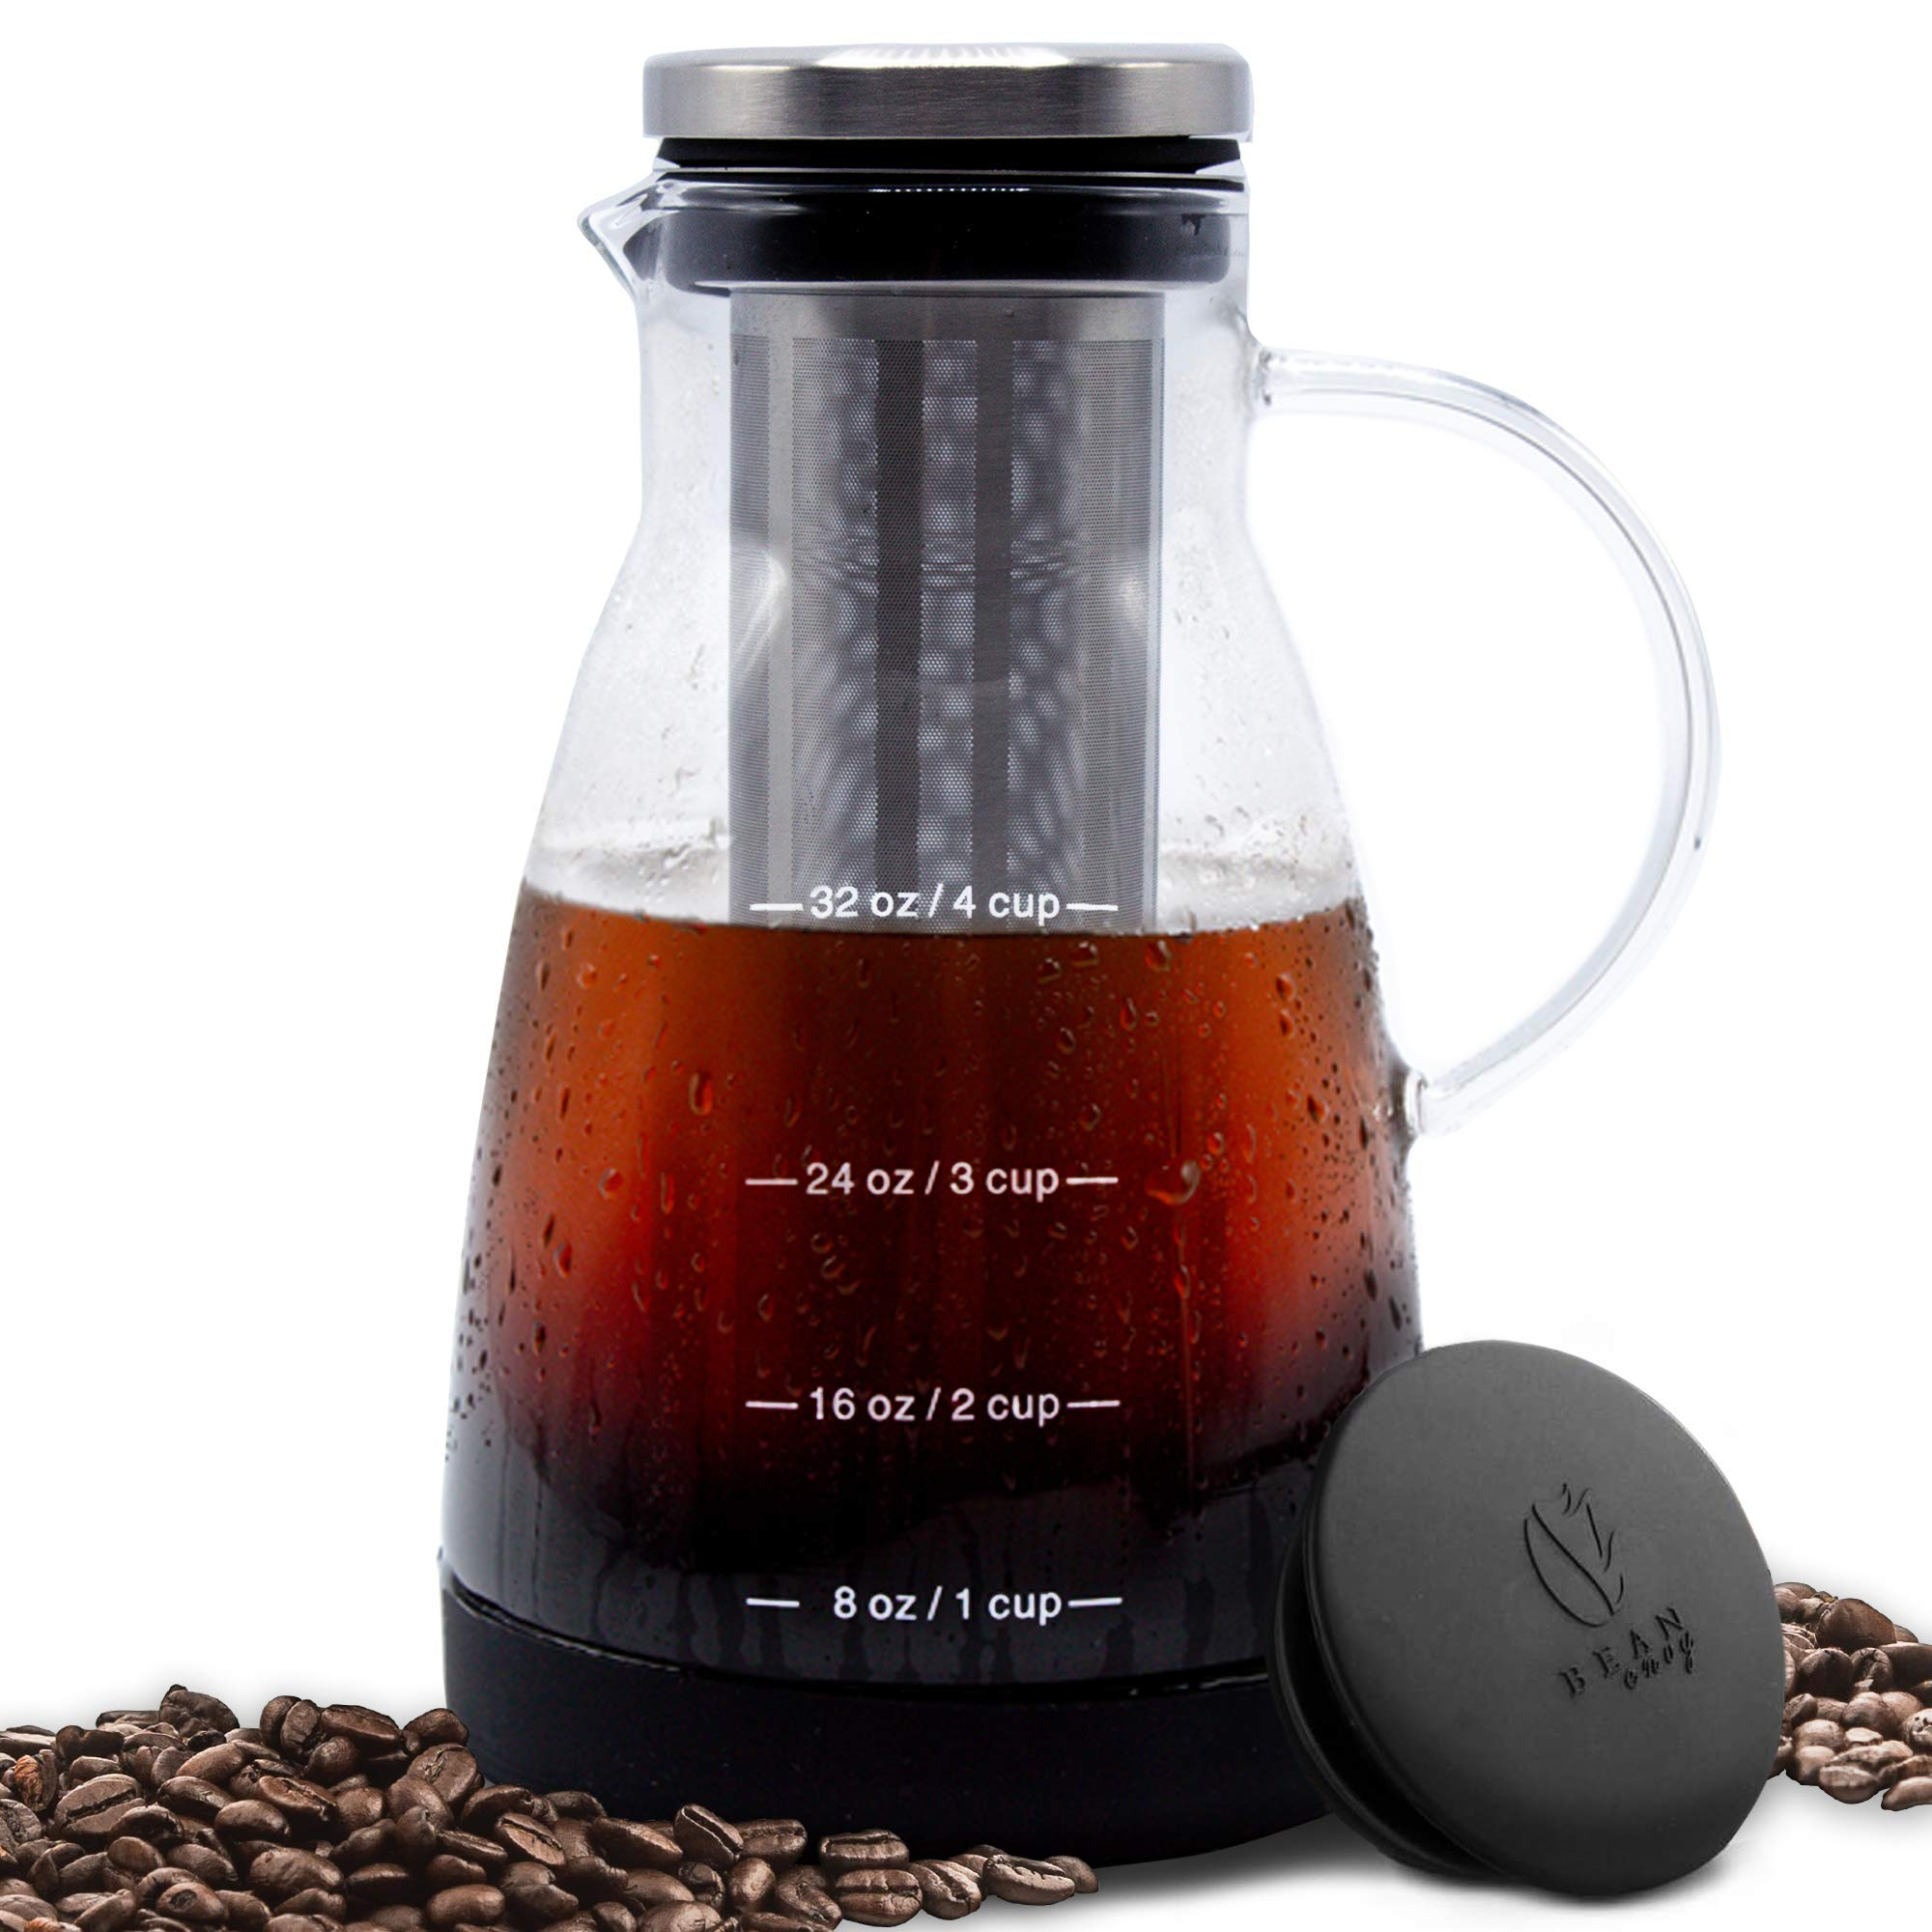 Bean Envy Cold Brew Coffee Maker - 32 oz - Premium Quality Glass - Perfect For Homemade Cold Brew and Iced Coffee - Includes Unique Non-Slip Silicone Base by Bean Envy